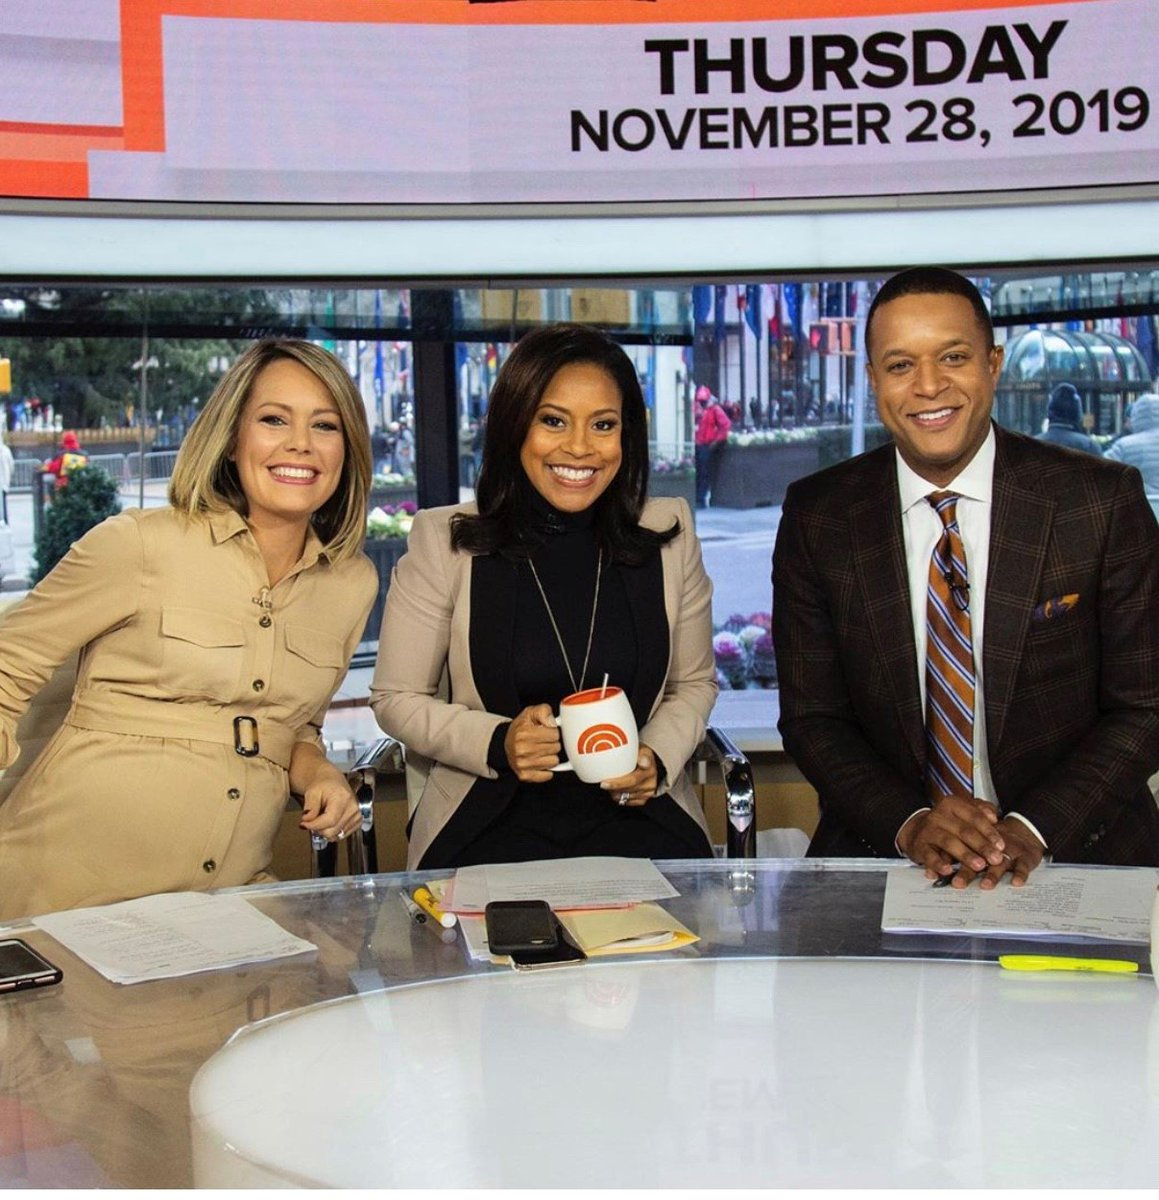 Happy thanksgiving from Studio 1A! 🦃